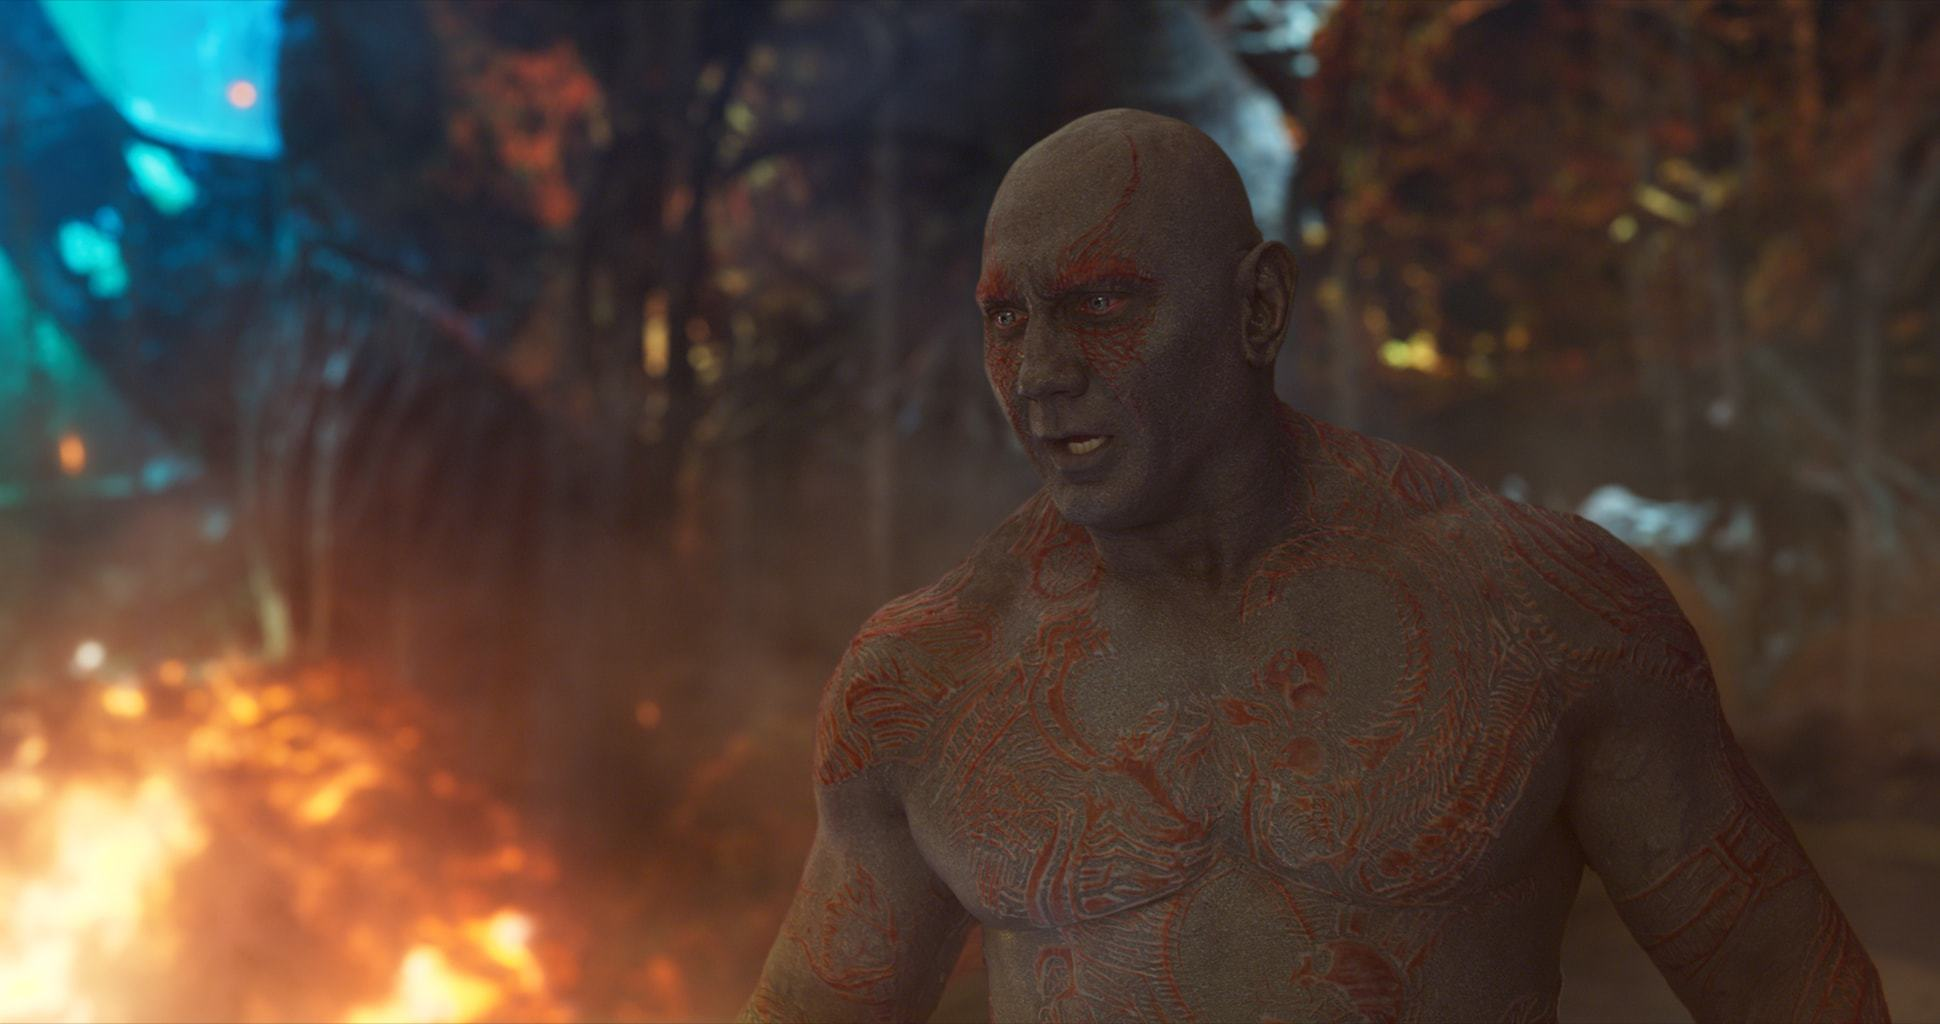 On Set and Behind the Scenes with Dave Bautista of Guardians of the Galaxy Vol 2